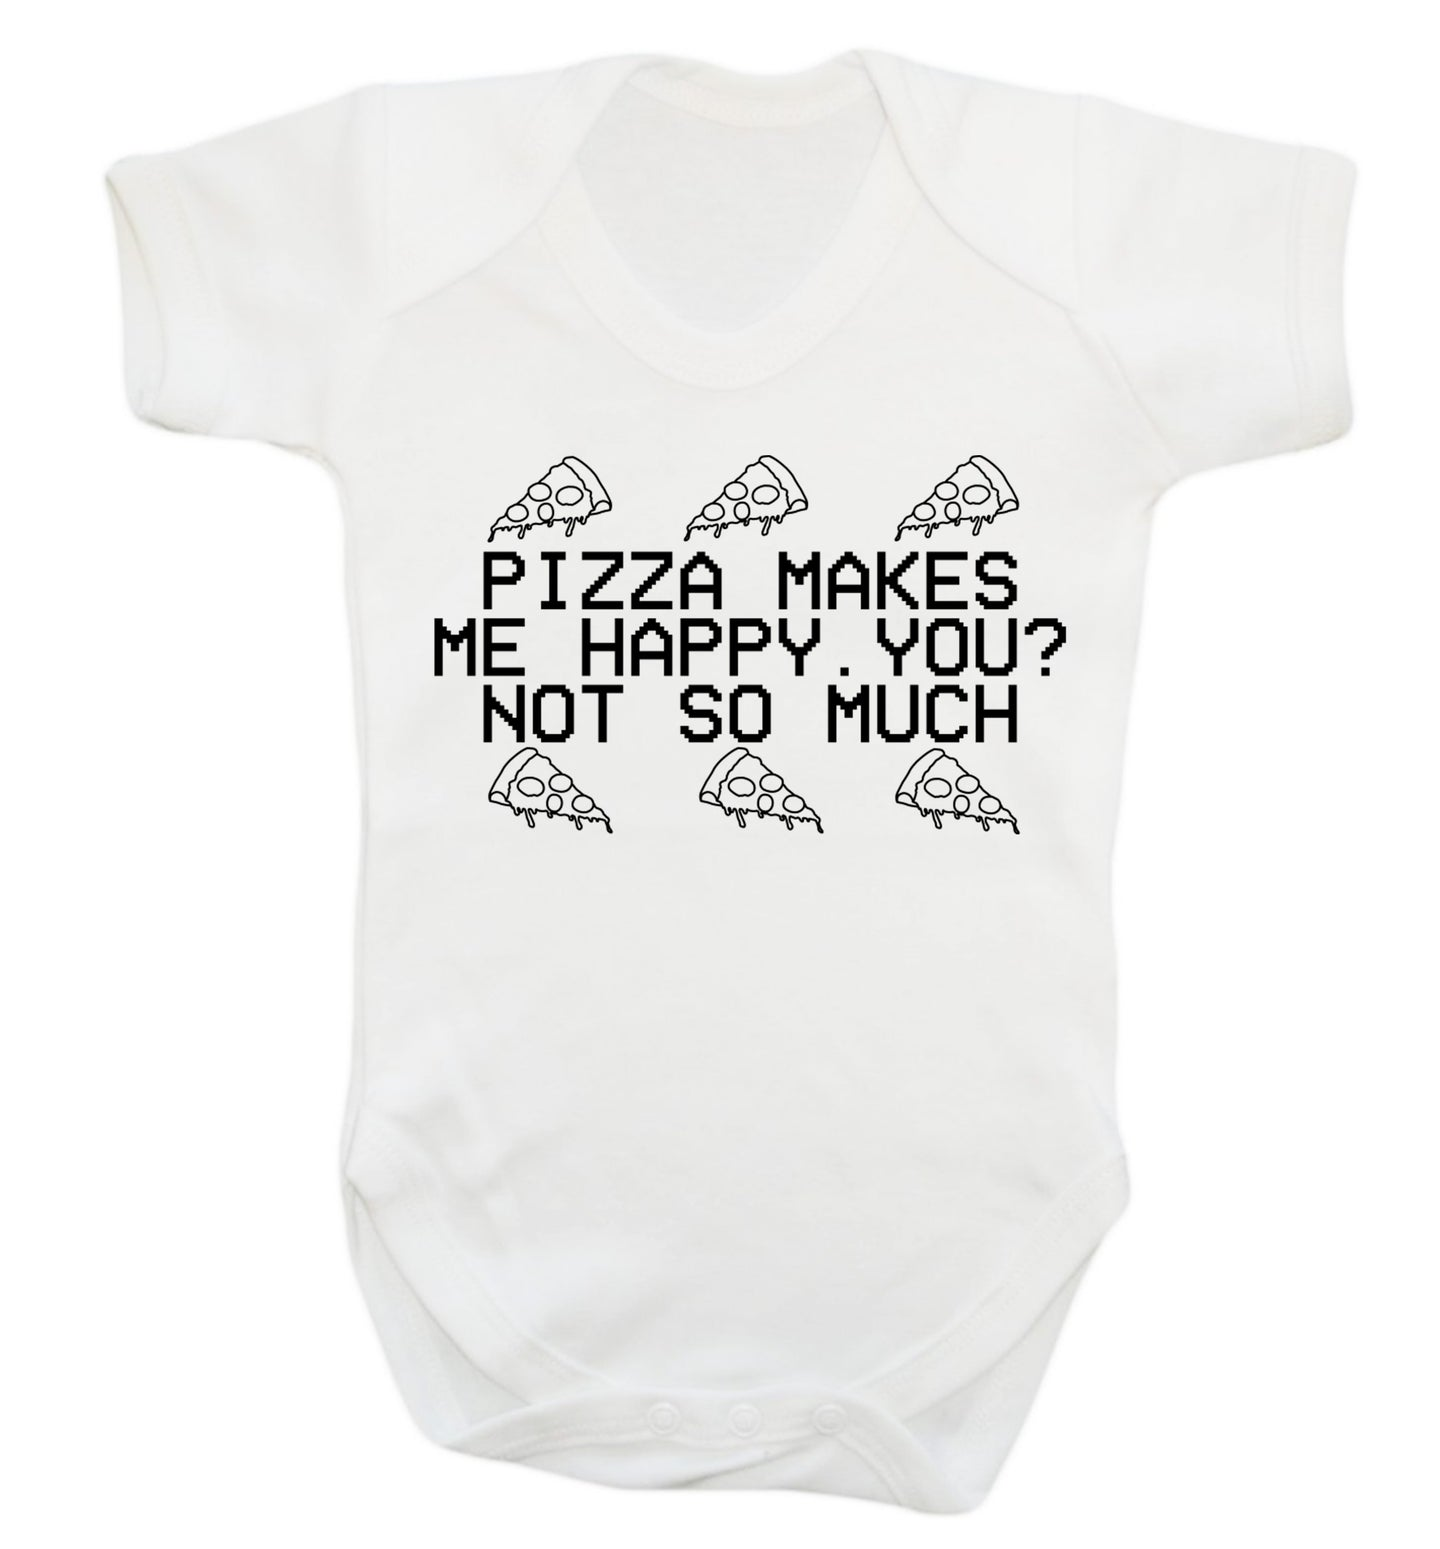 Pizza makes me happy, You? Not so much Baby Vest white 18-24 months